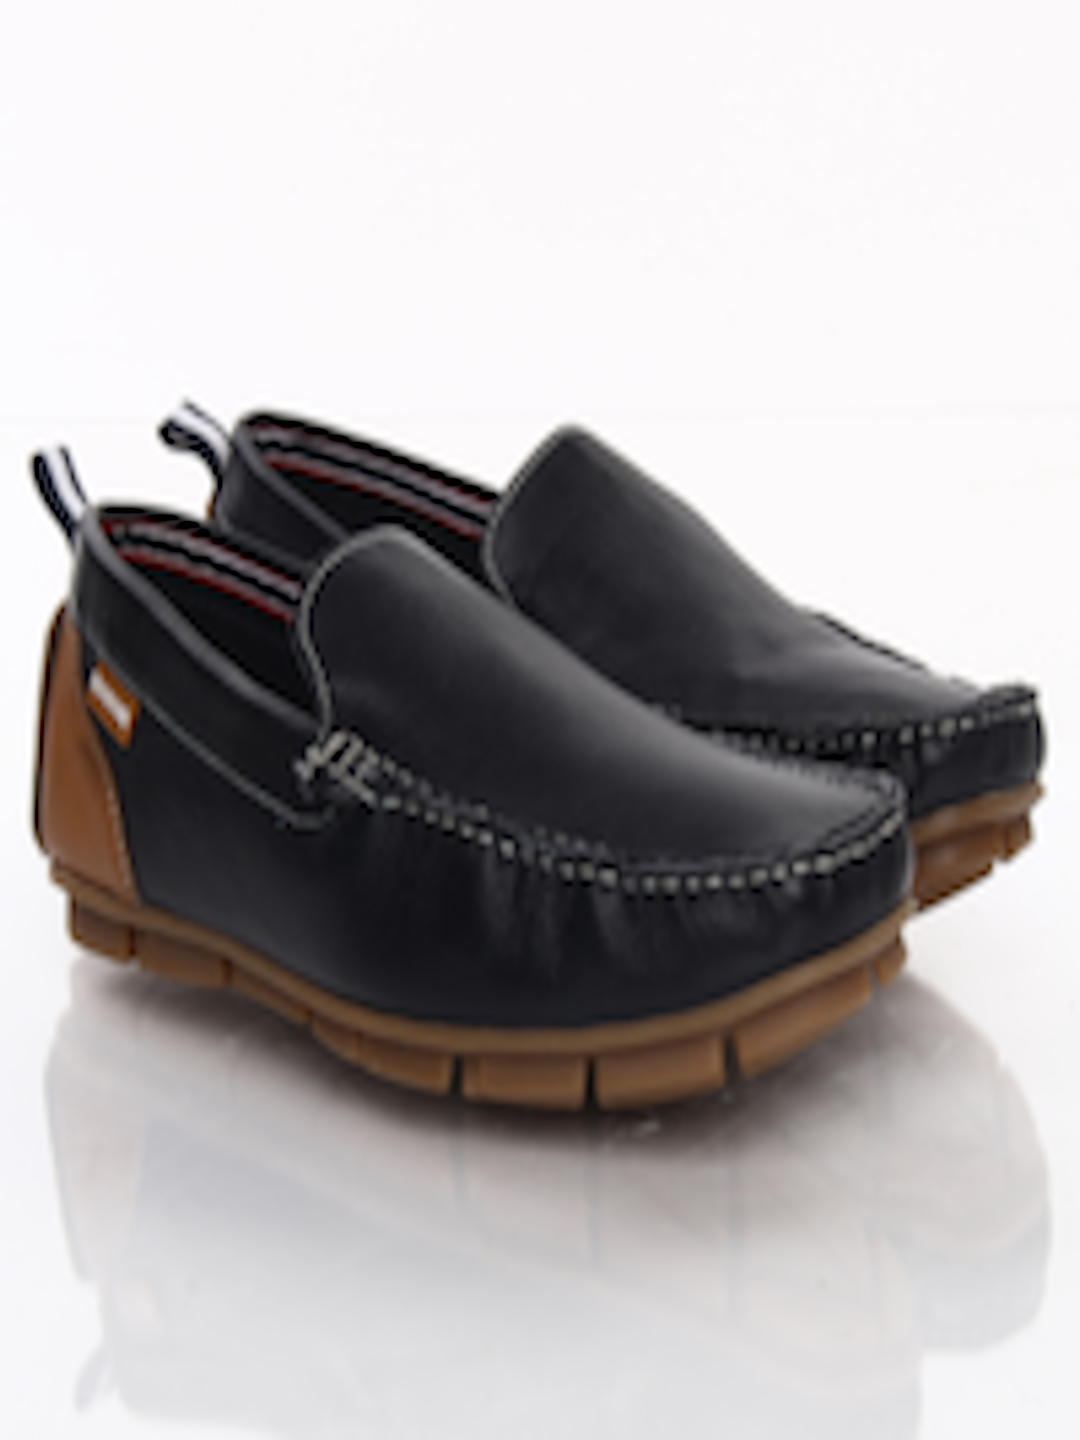 buy u s polo assn navy leather loafers casual